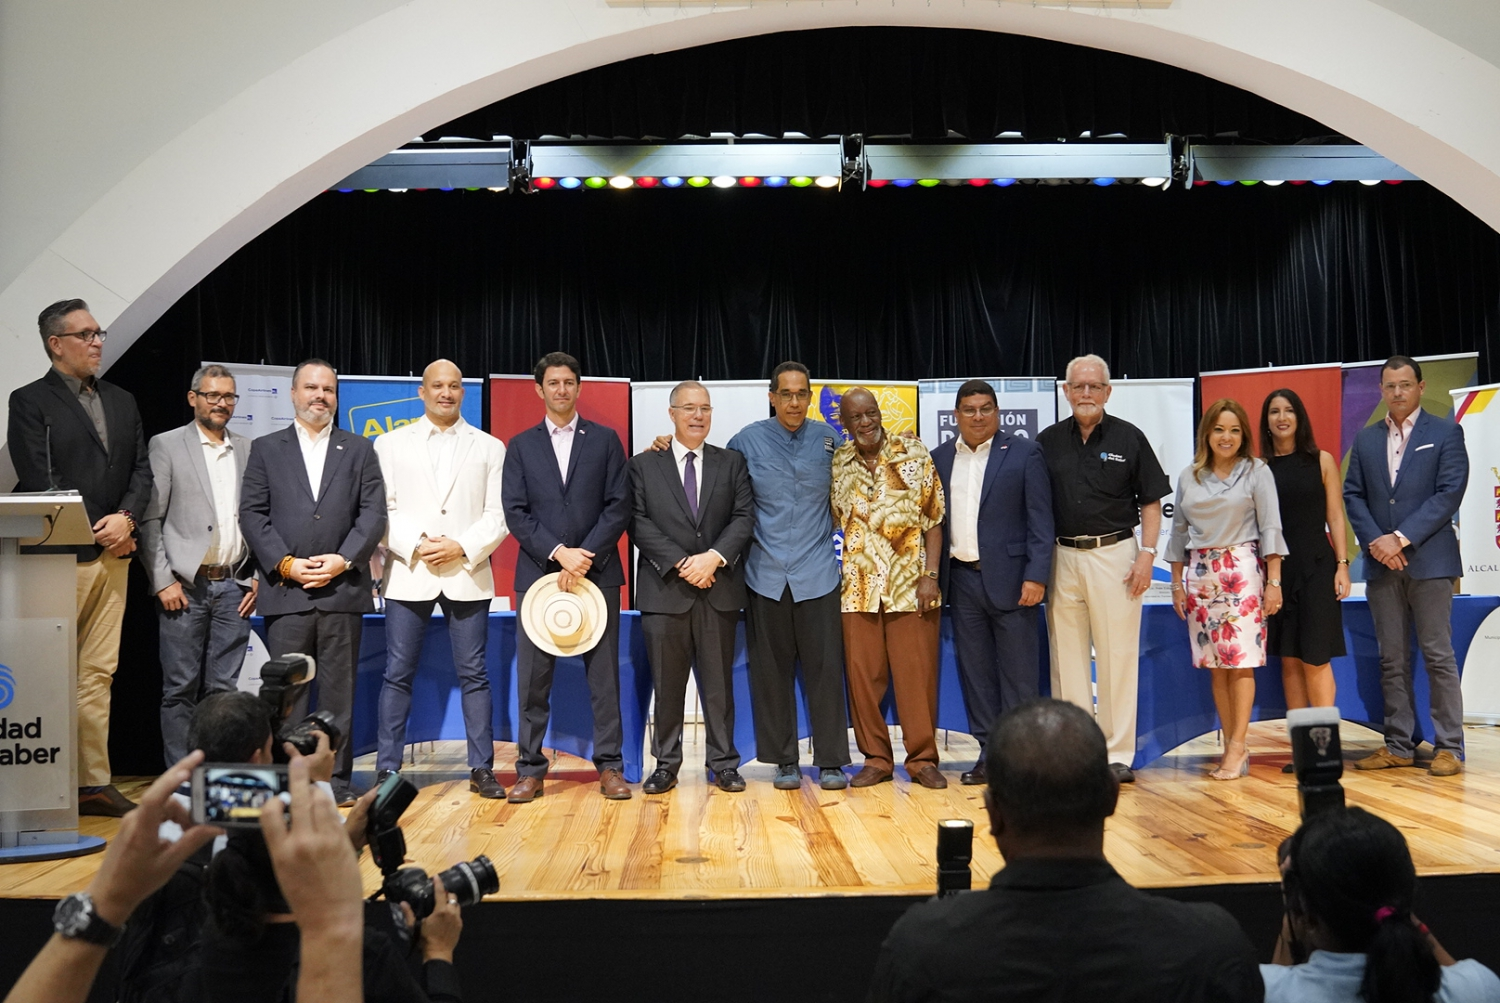 Panama Jazz Festival 2020 starts off with an injection of joy and positivity